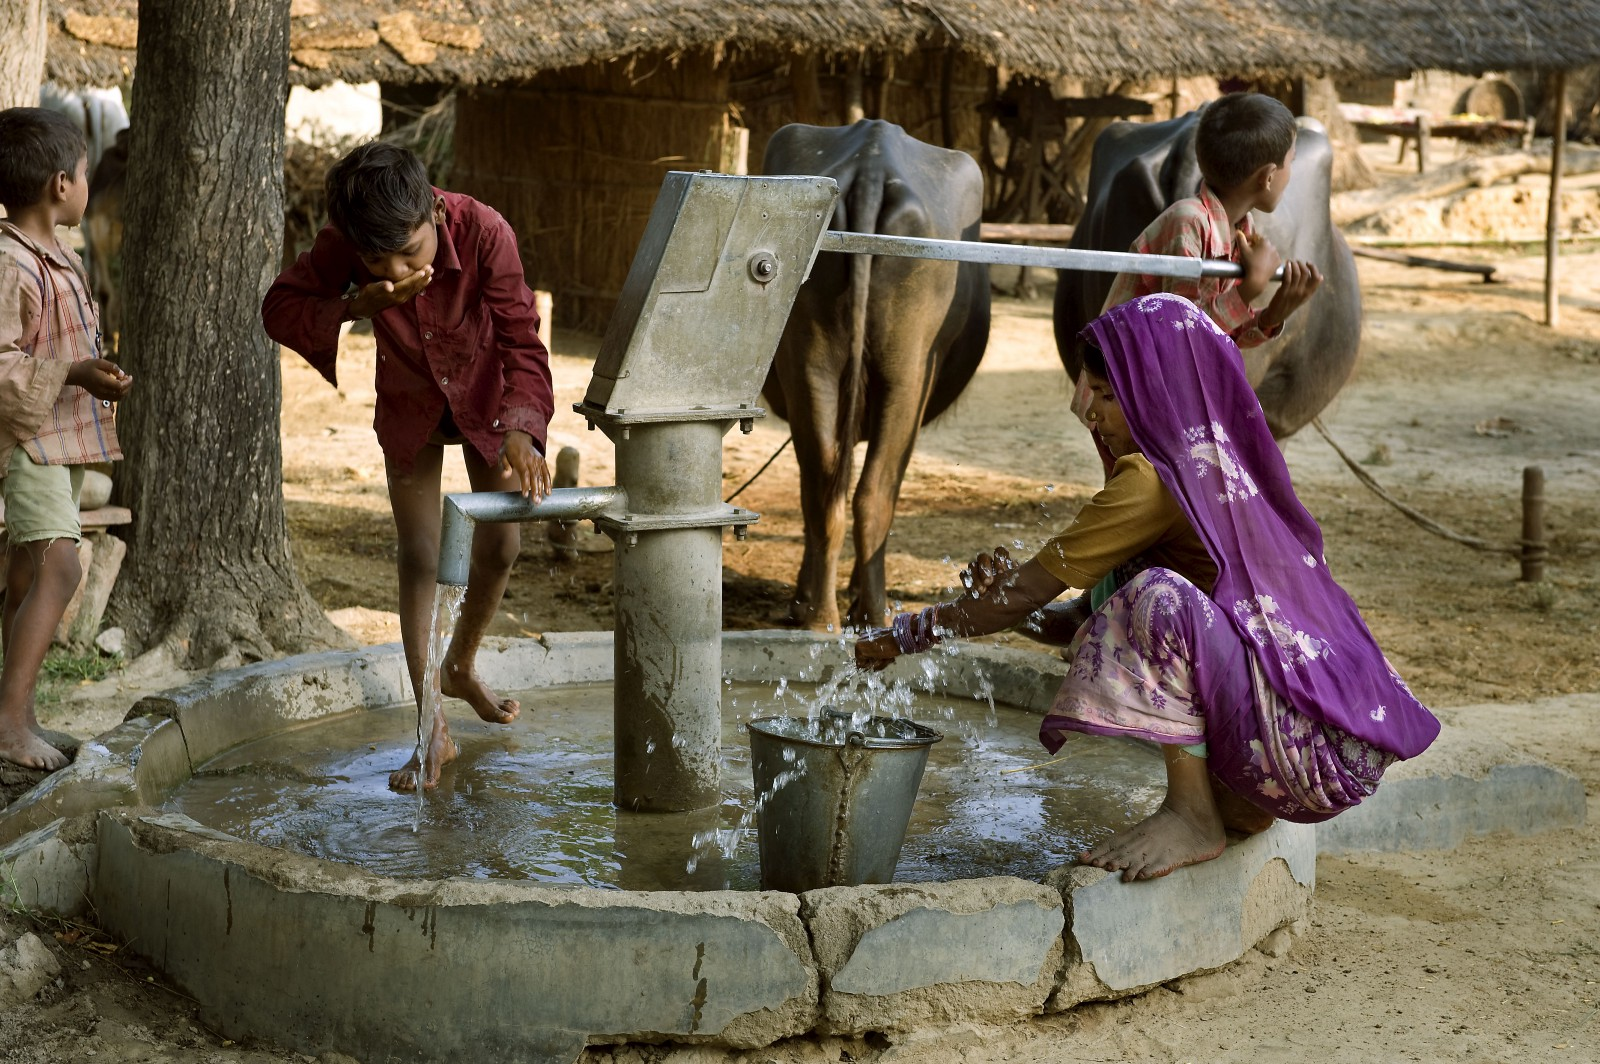 Using Mobile Phones to Alert Households Waiting for 'NextDrop' of Water